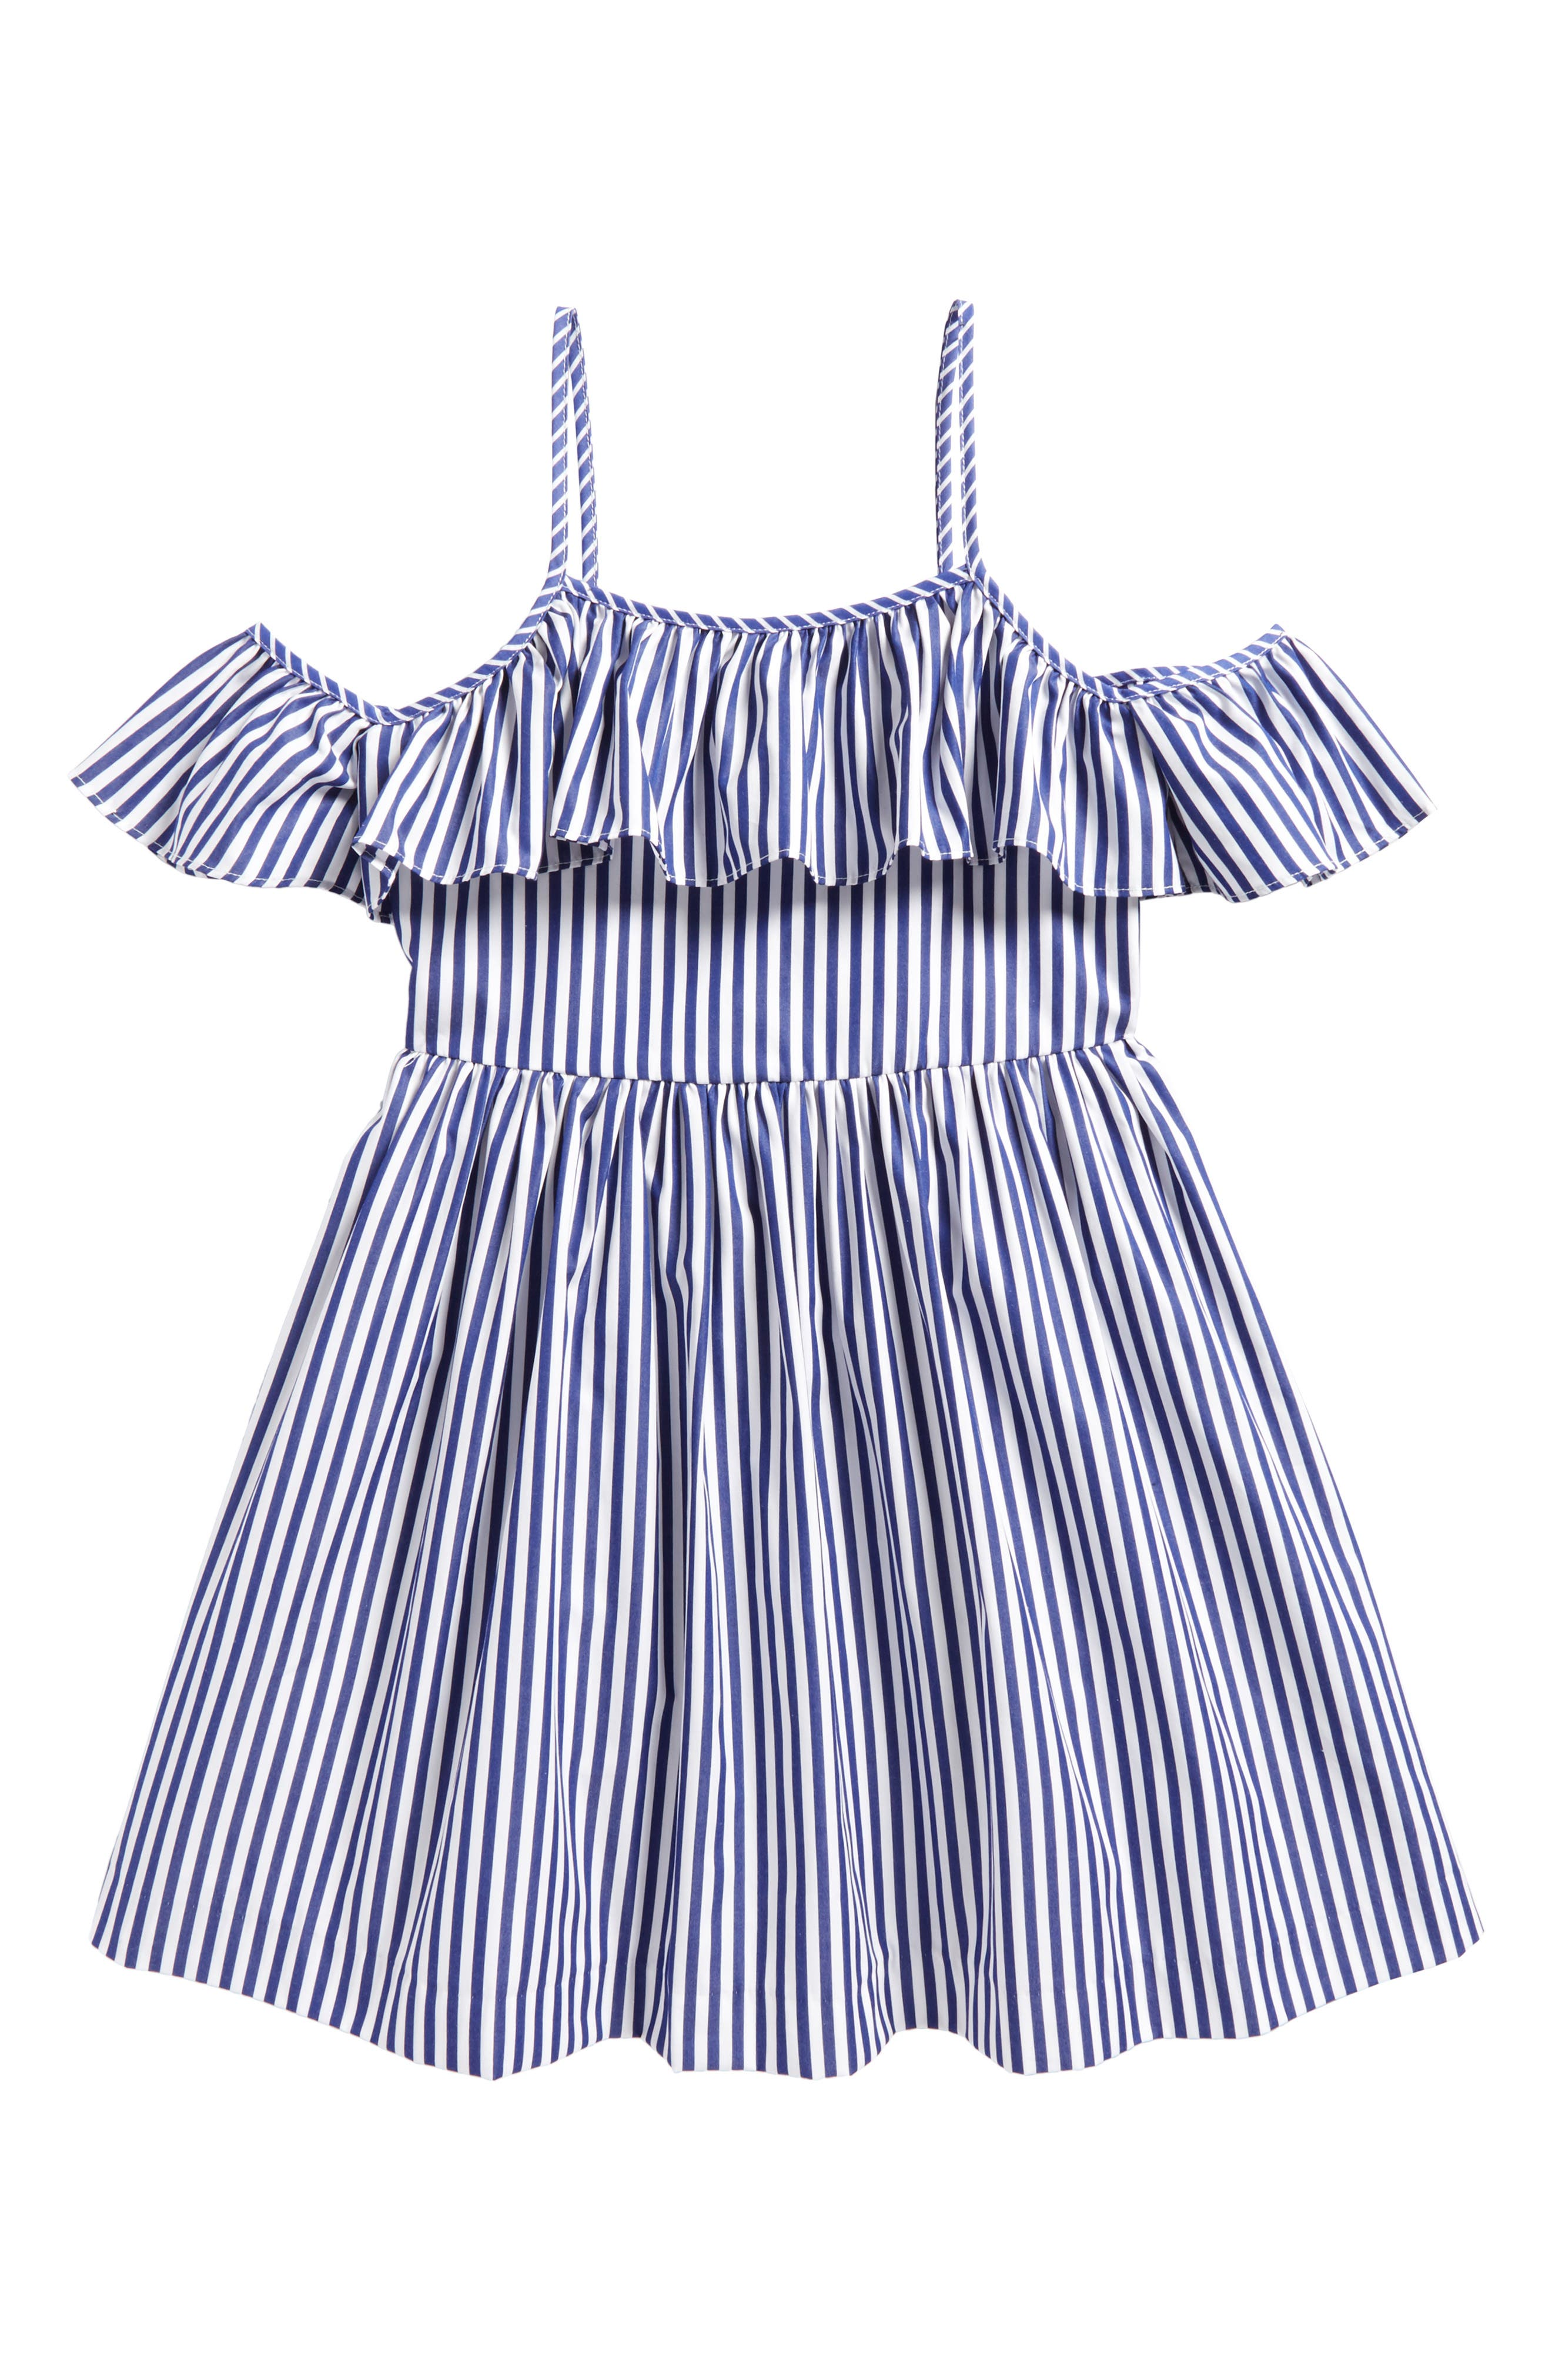 Main Image - Milly Minis Bella Dress (Big Girls)